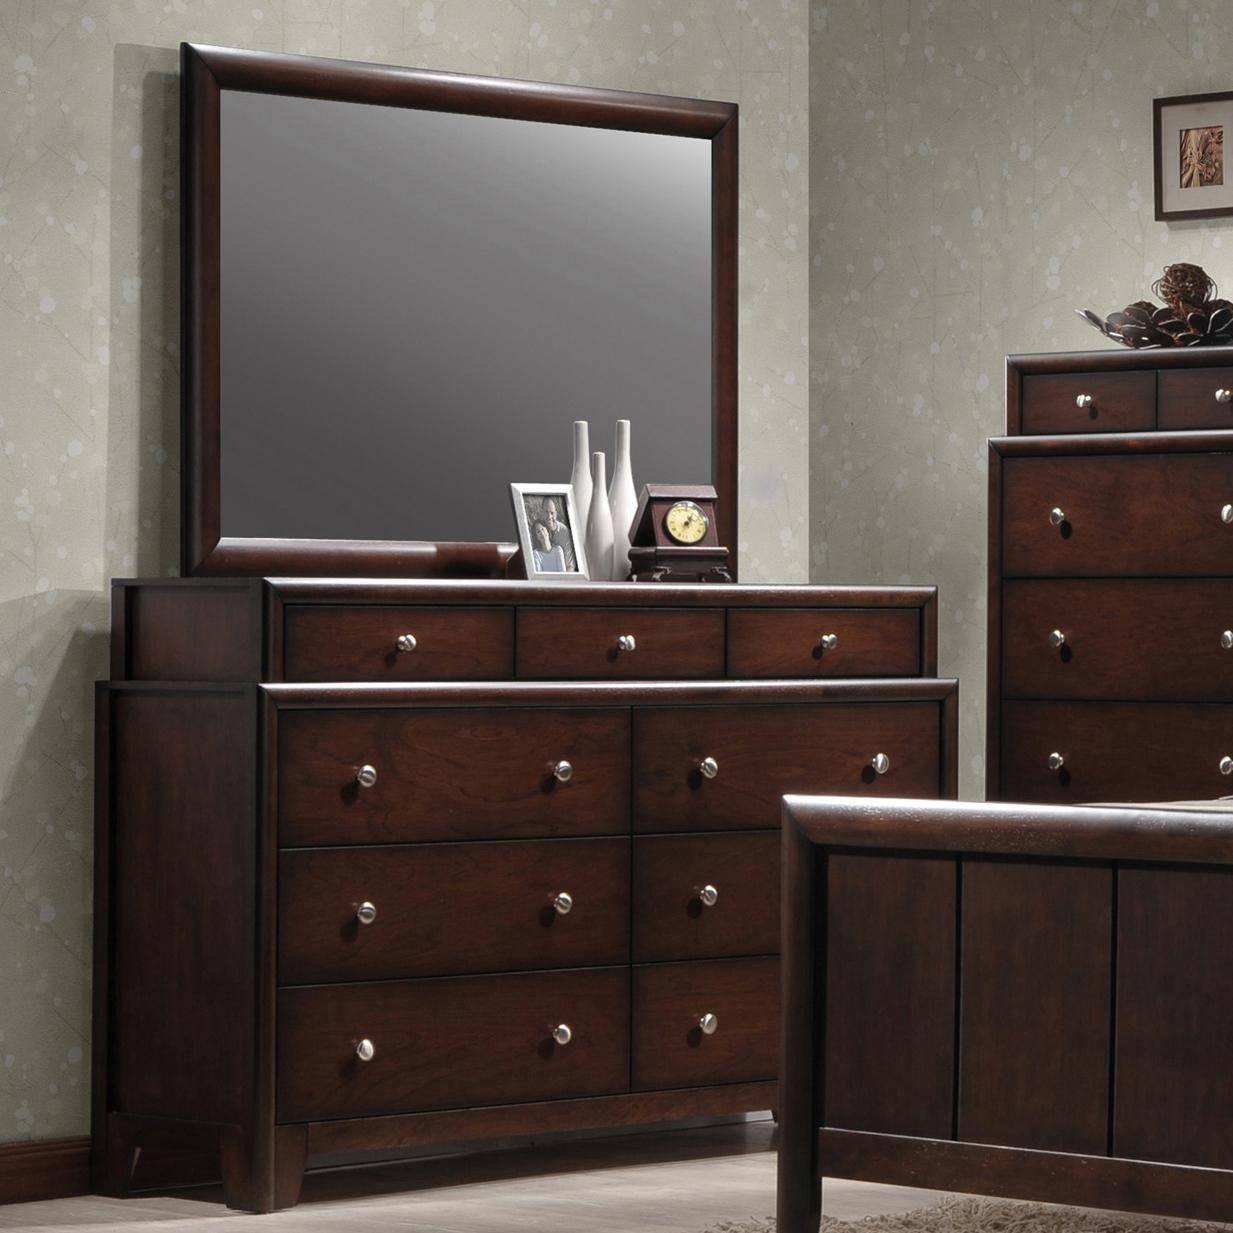 Crown Mark Essex Dresser and Mirror Combination - Item Number: B6875-1+11